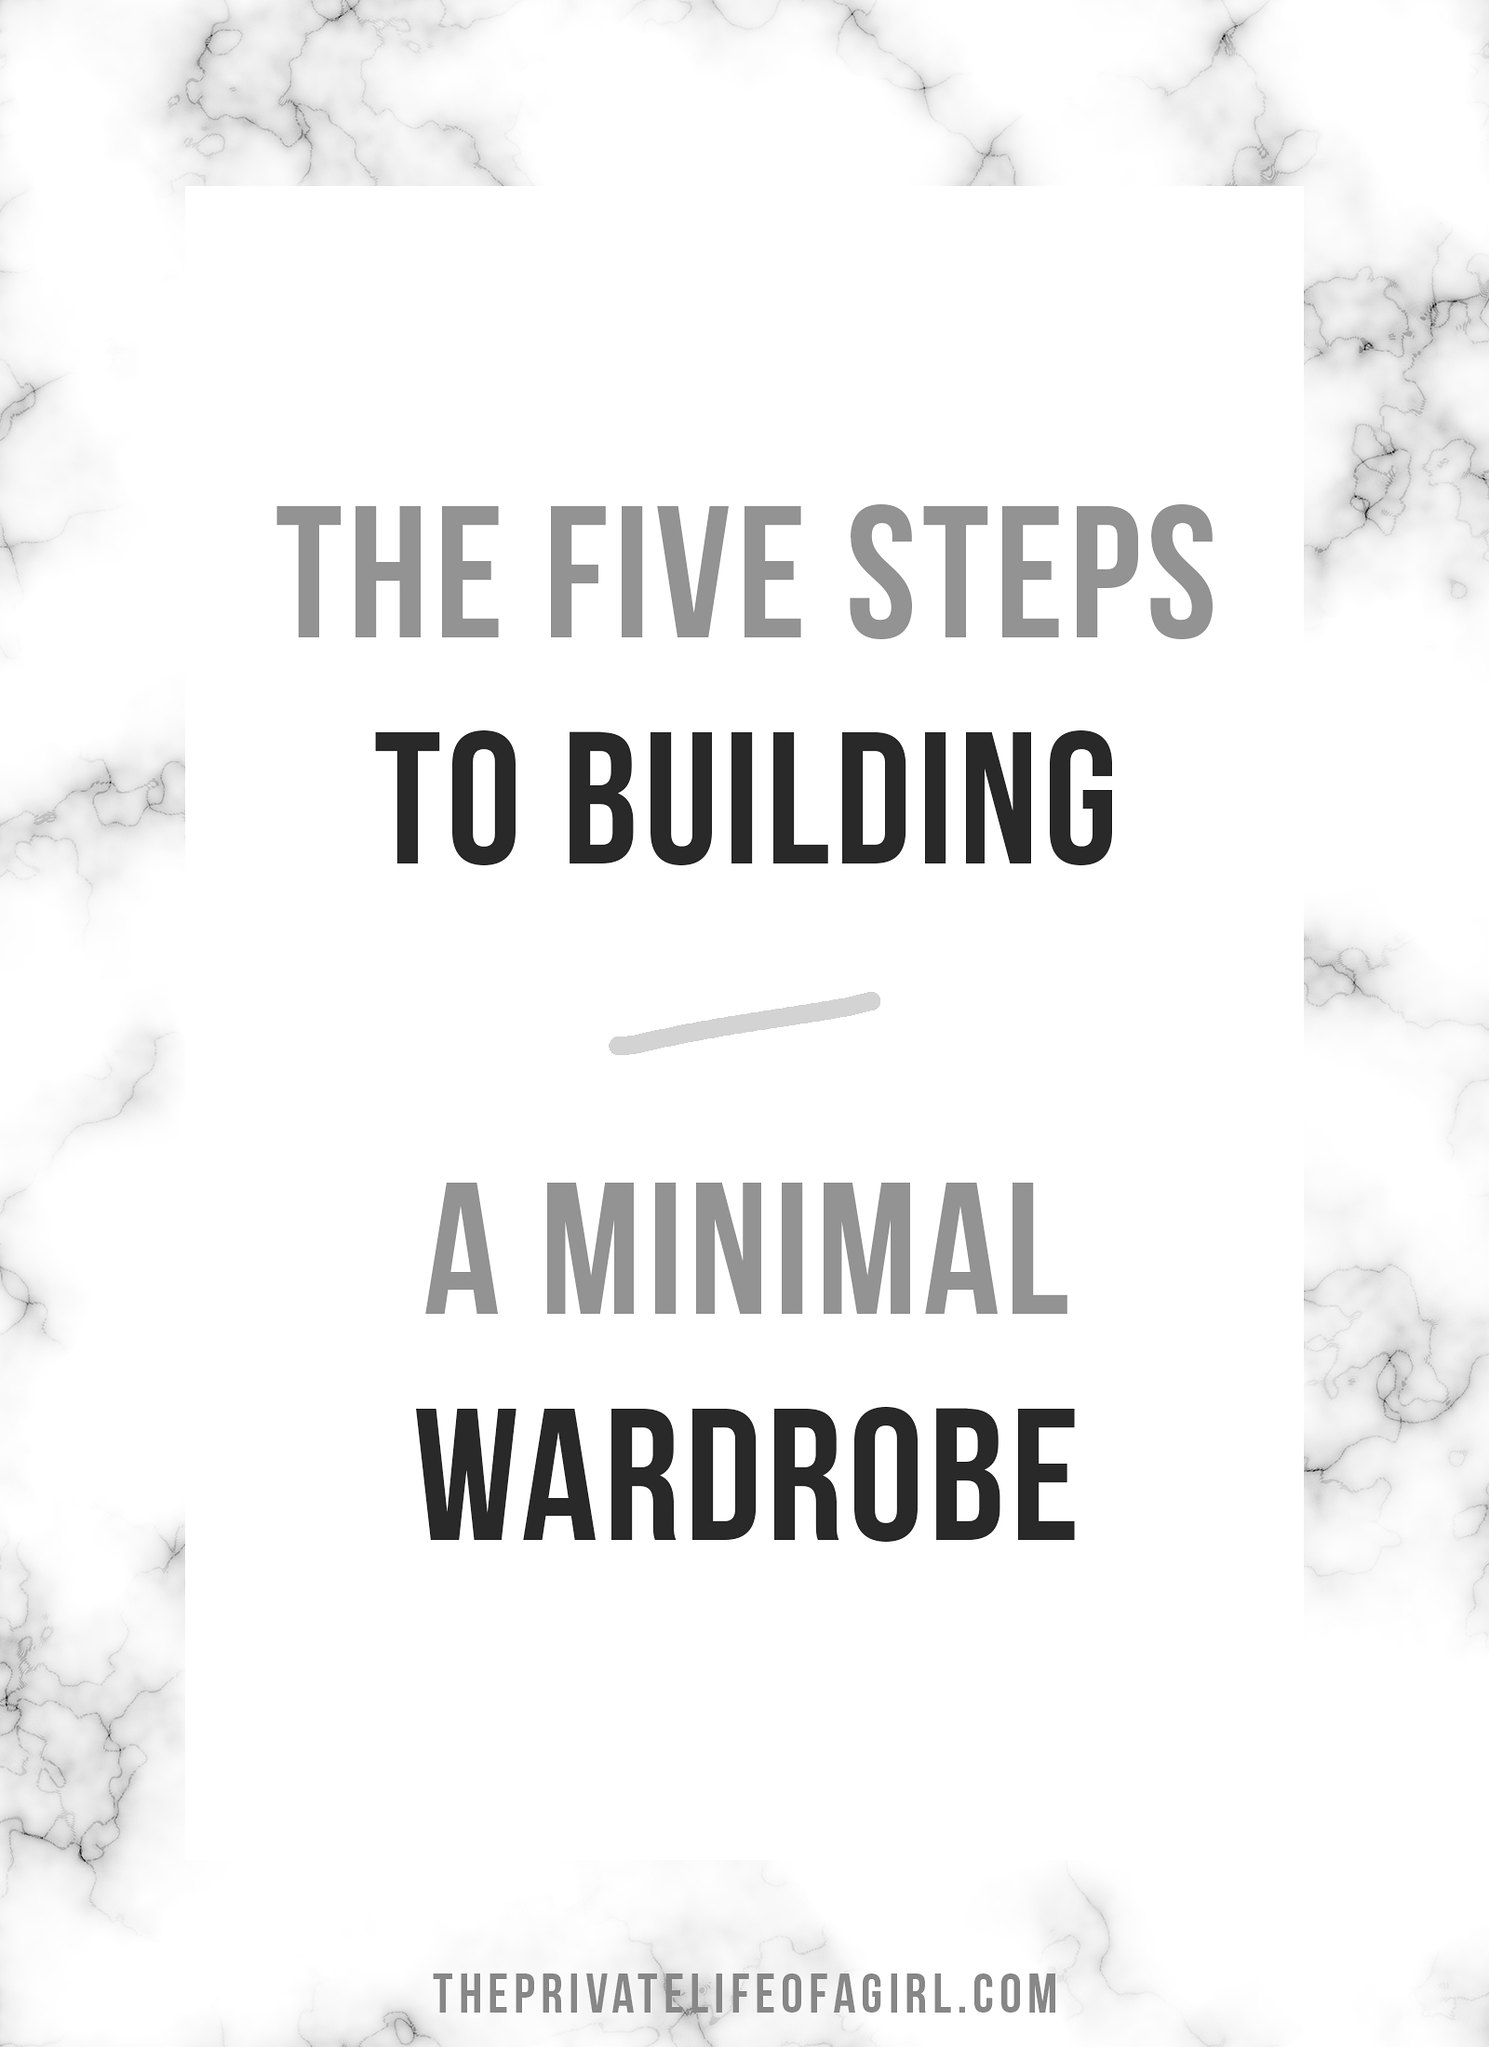 The Five Steps To Building A Minimal Wardrobe